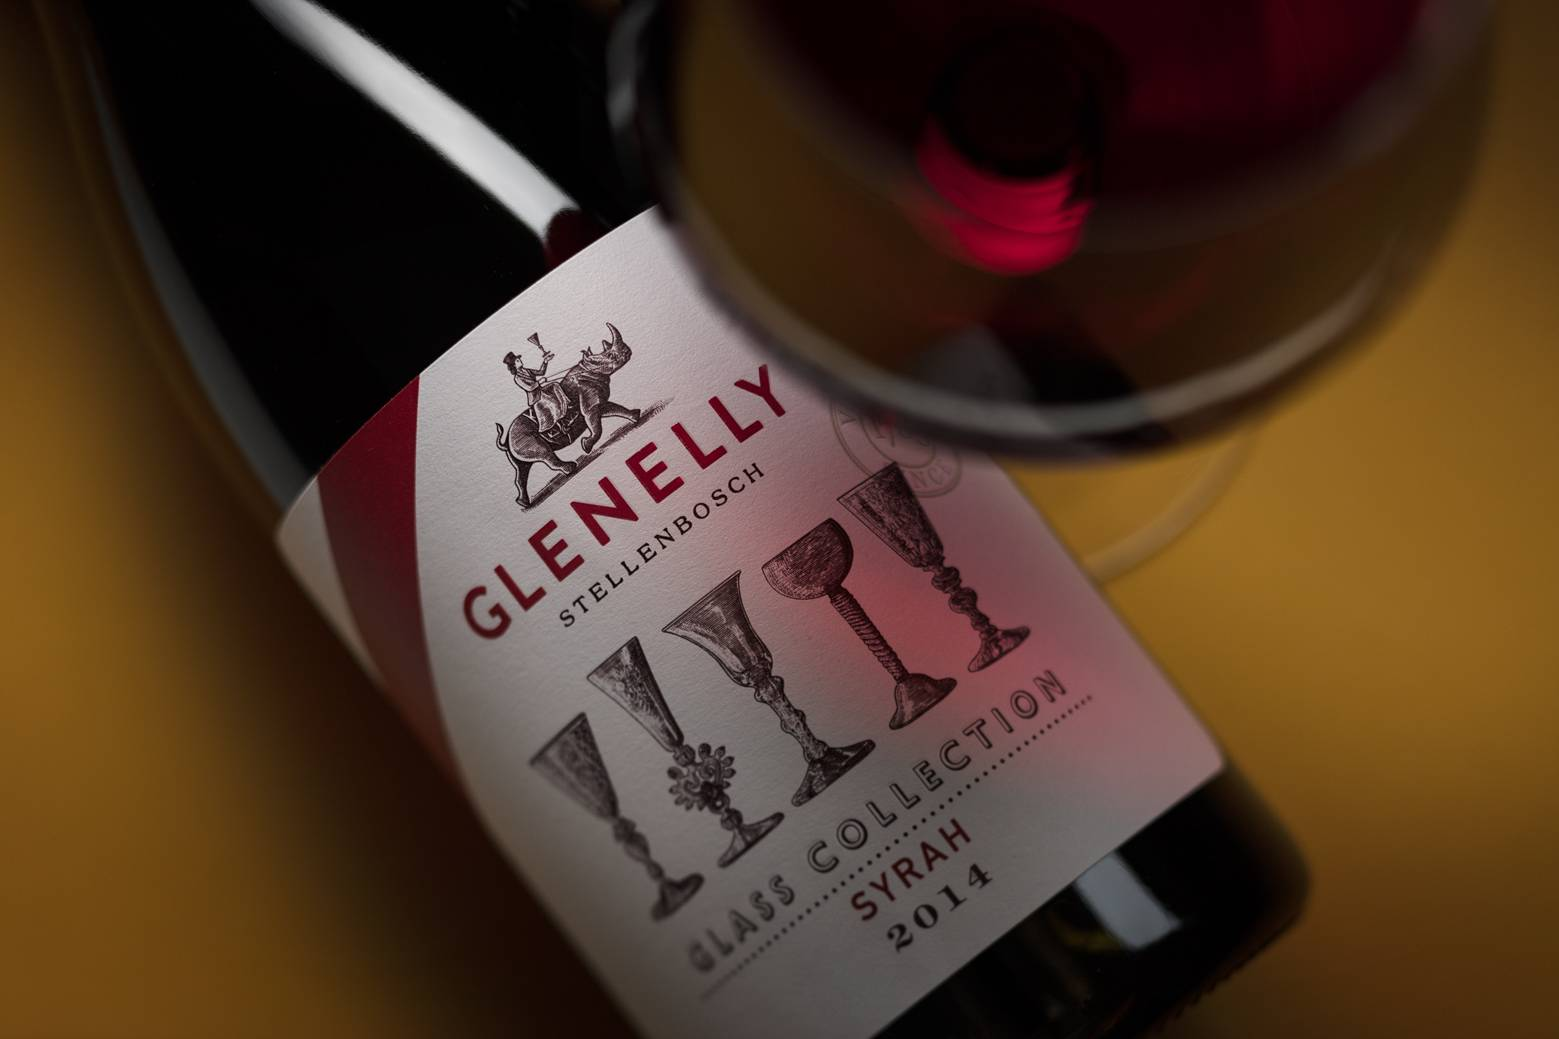 Glenelly GC Syrah 2014